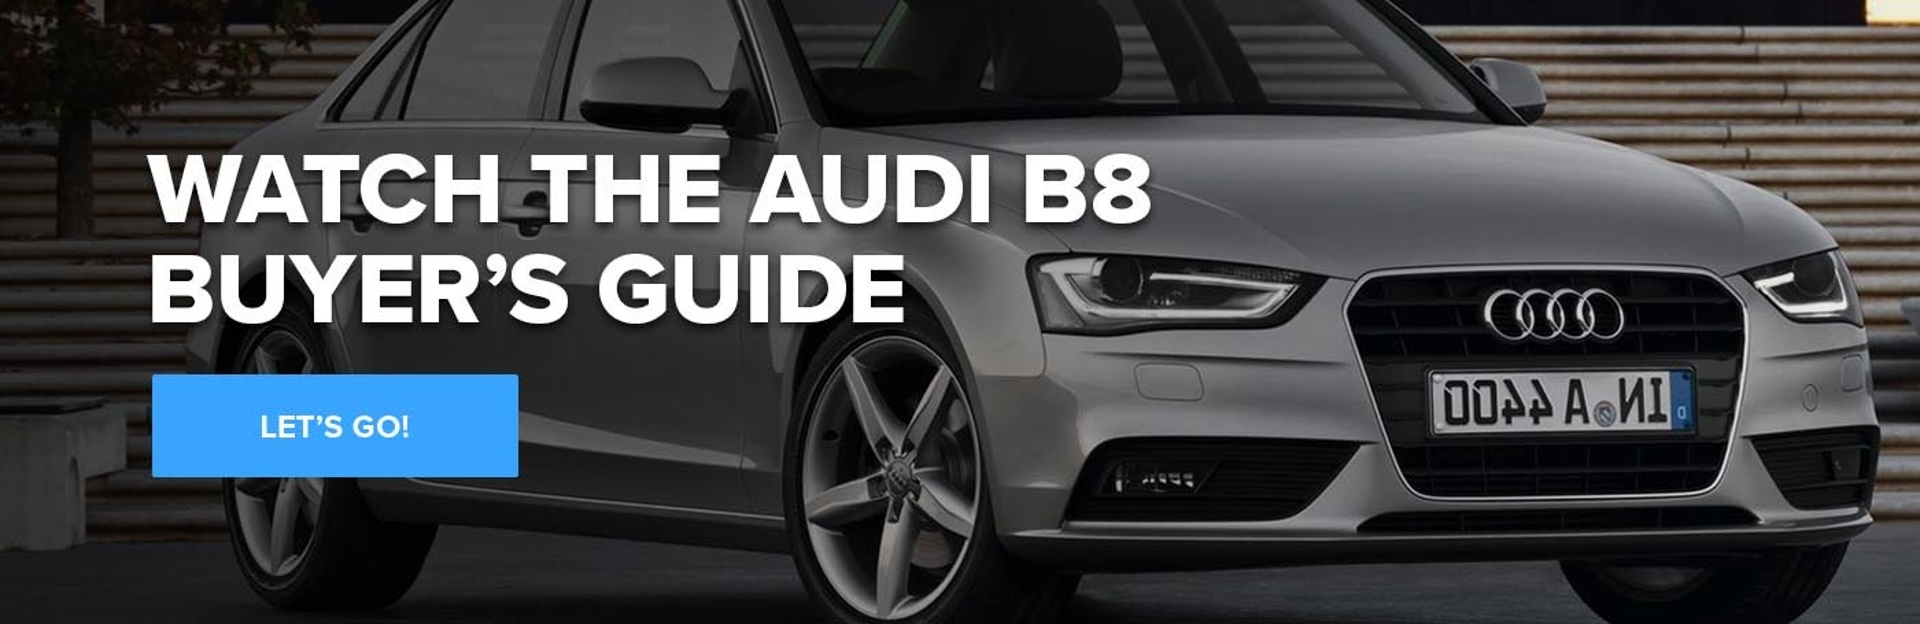 Audi B8 Video Buyer's Guide